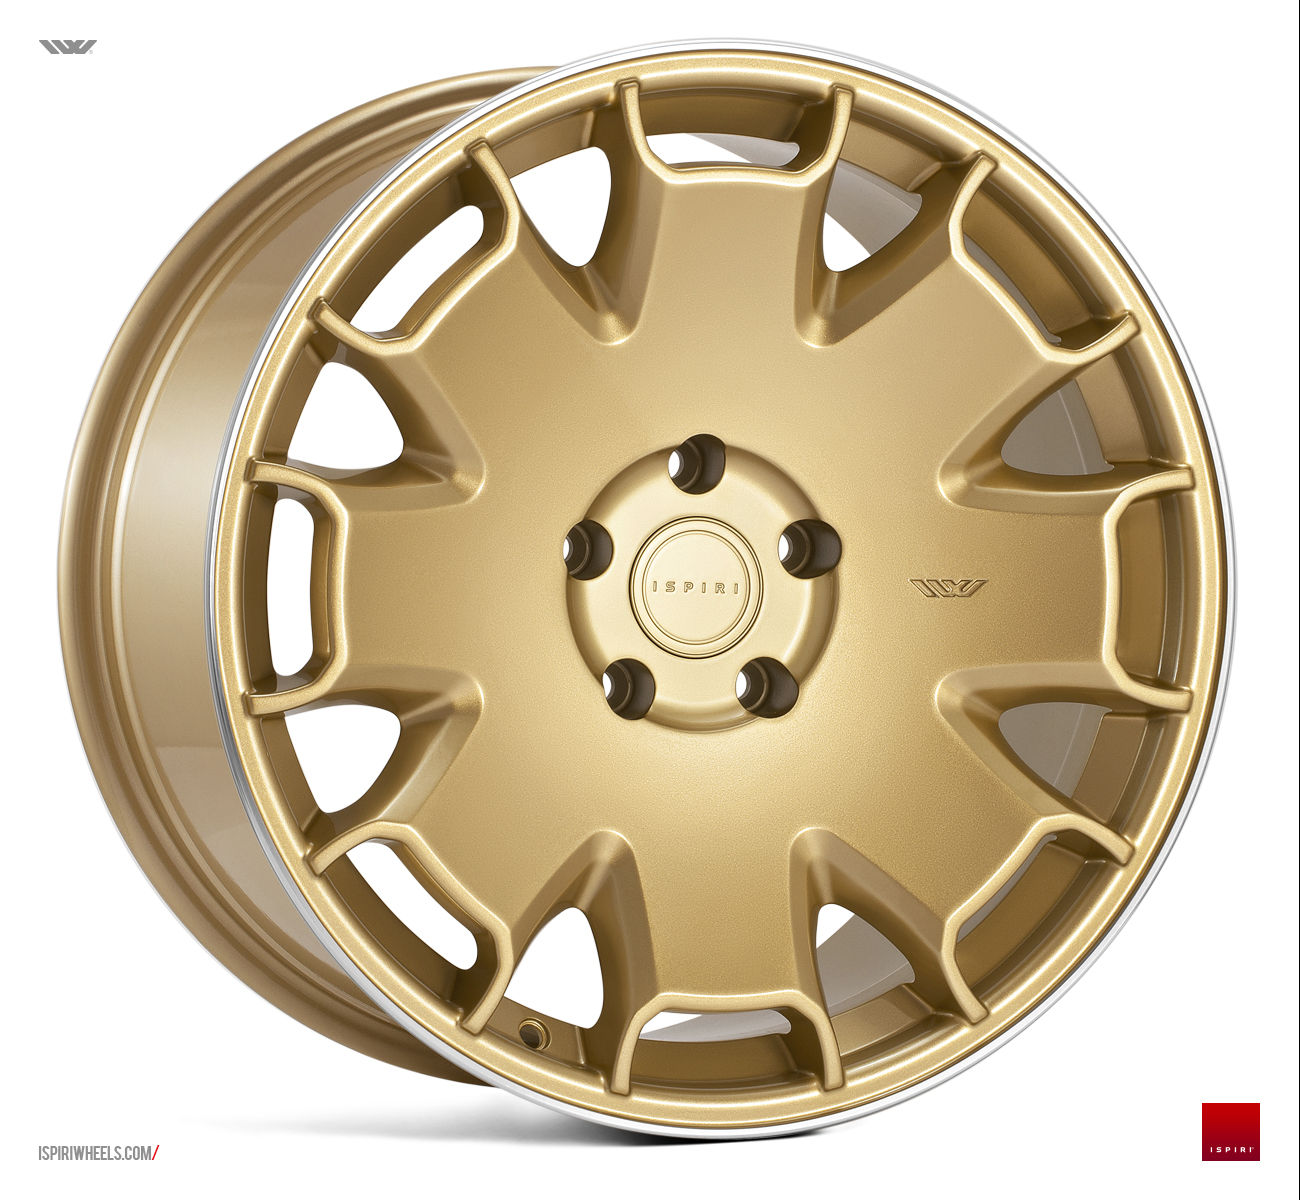 "NEW 19"" ISPIRI CSR2 ALLOYS IN VINTAGE GOLD WITH POLISHED LIP et32 or et42/42"